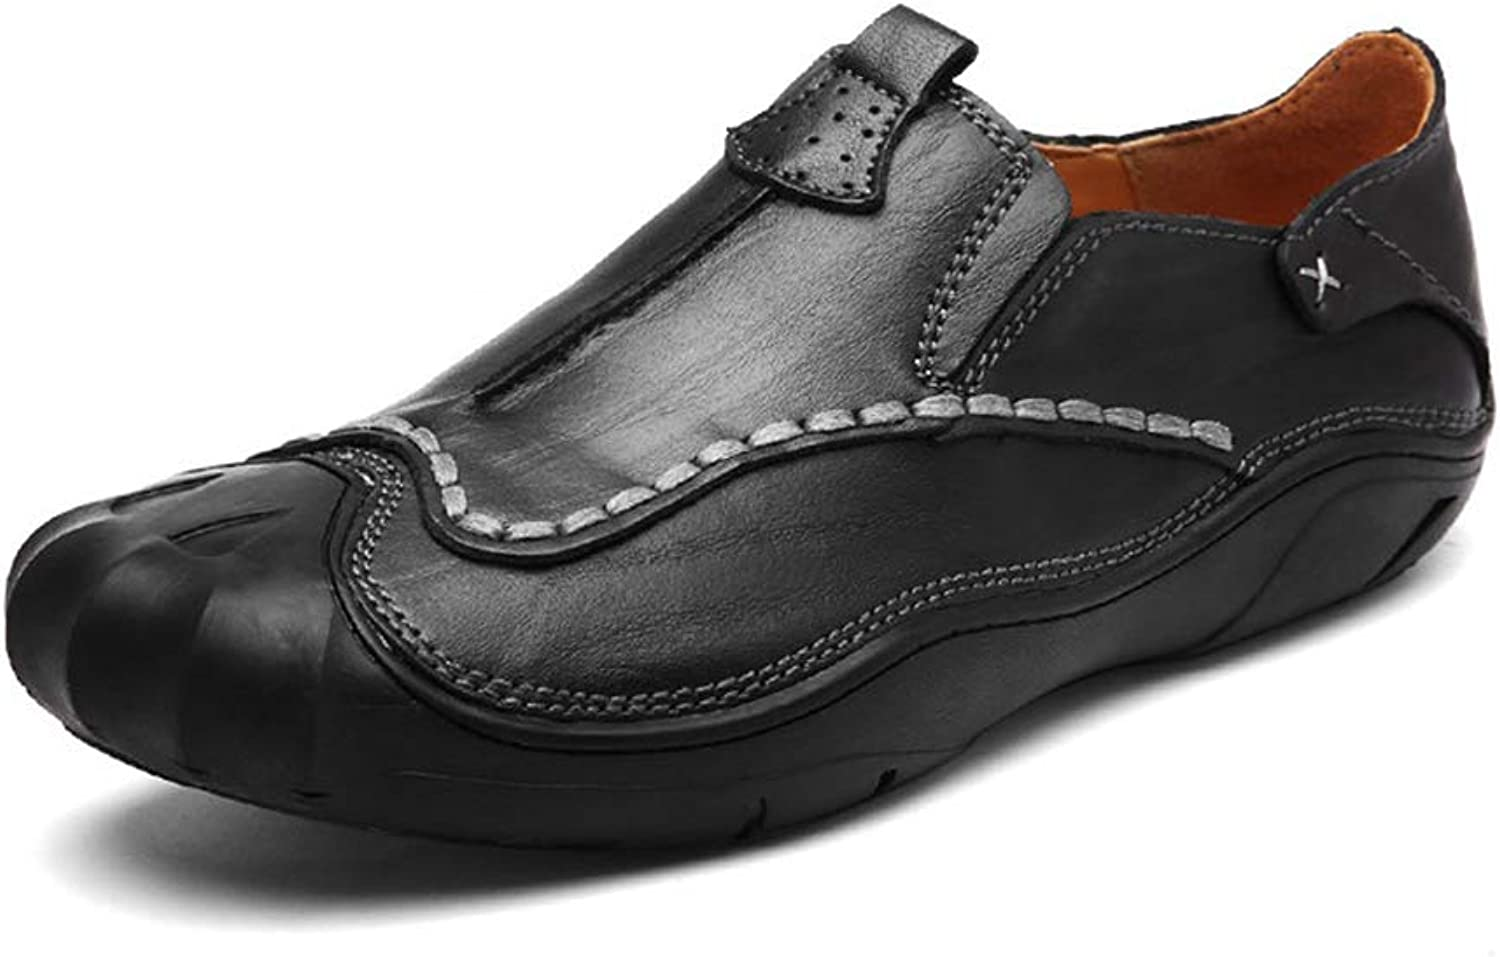 JITIAN Mens Causal Leather Flats Driving Loafers Comfortable Outdoor Moccasins Spring Summer Anti-Slip Oxfords shoes for Work Office